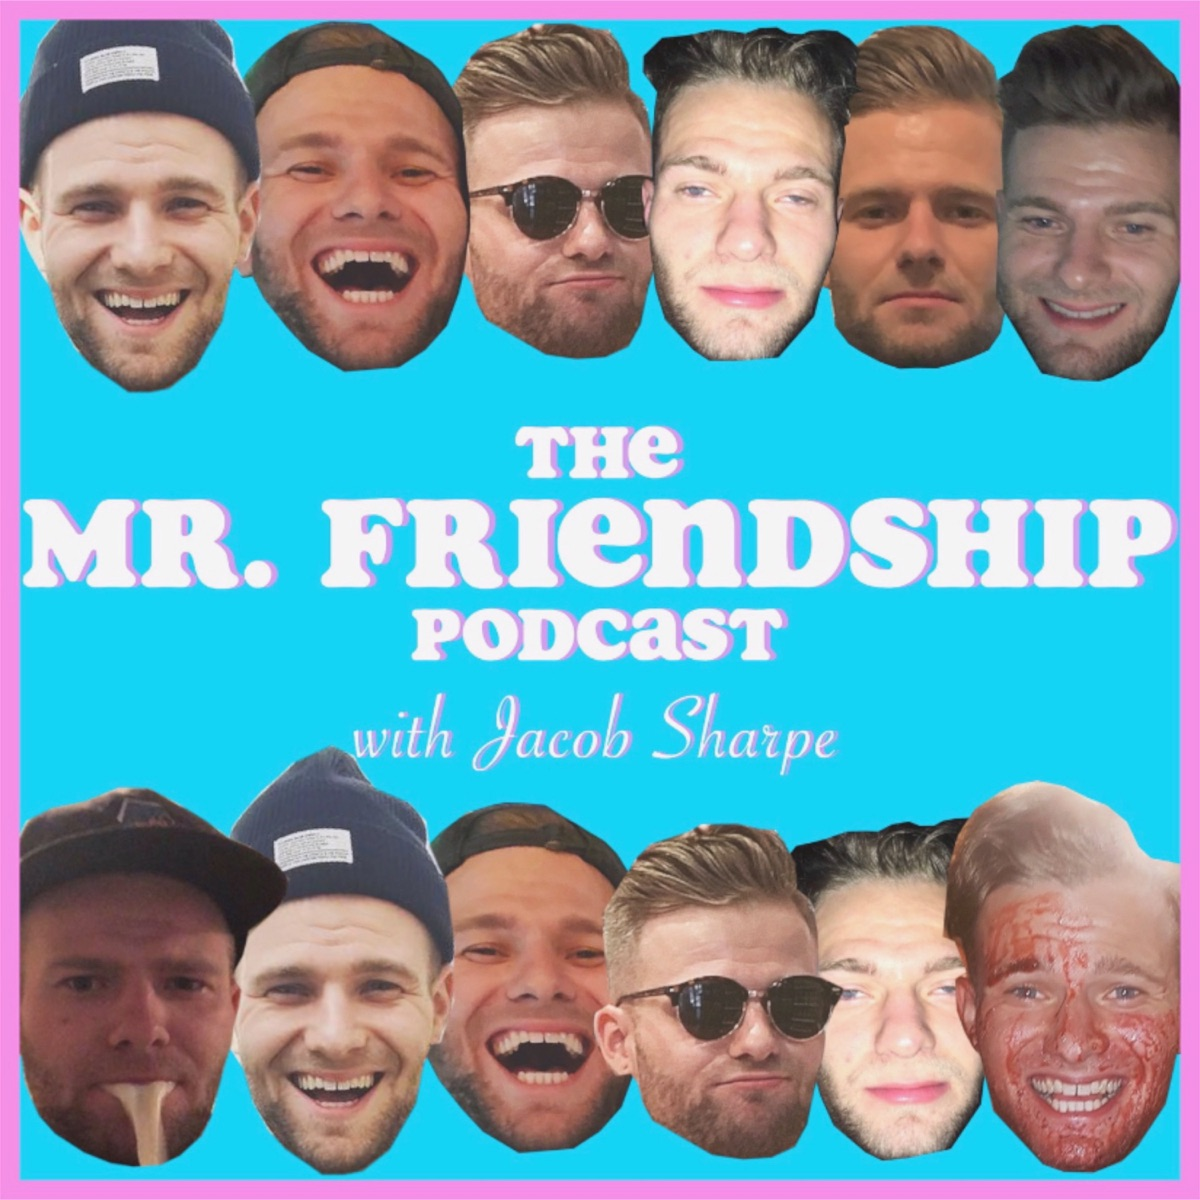 The Mr. Friendship Podcast